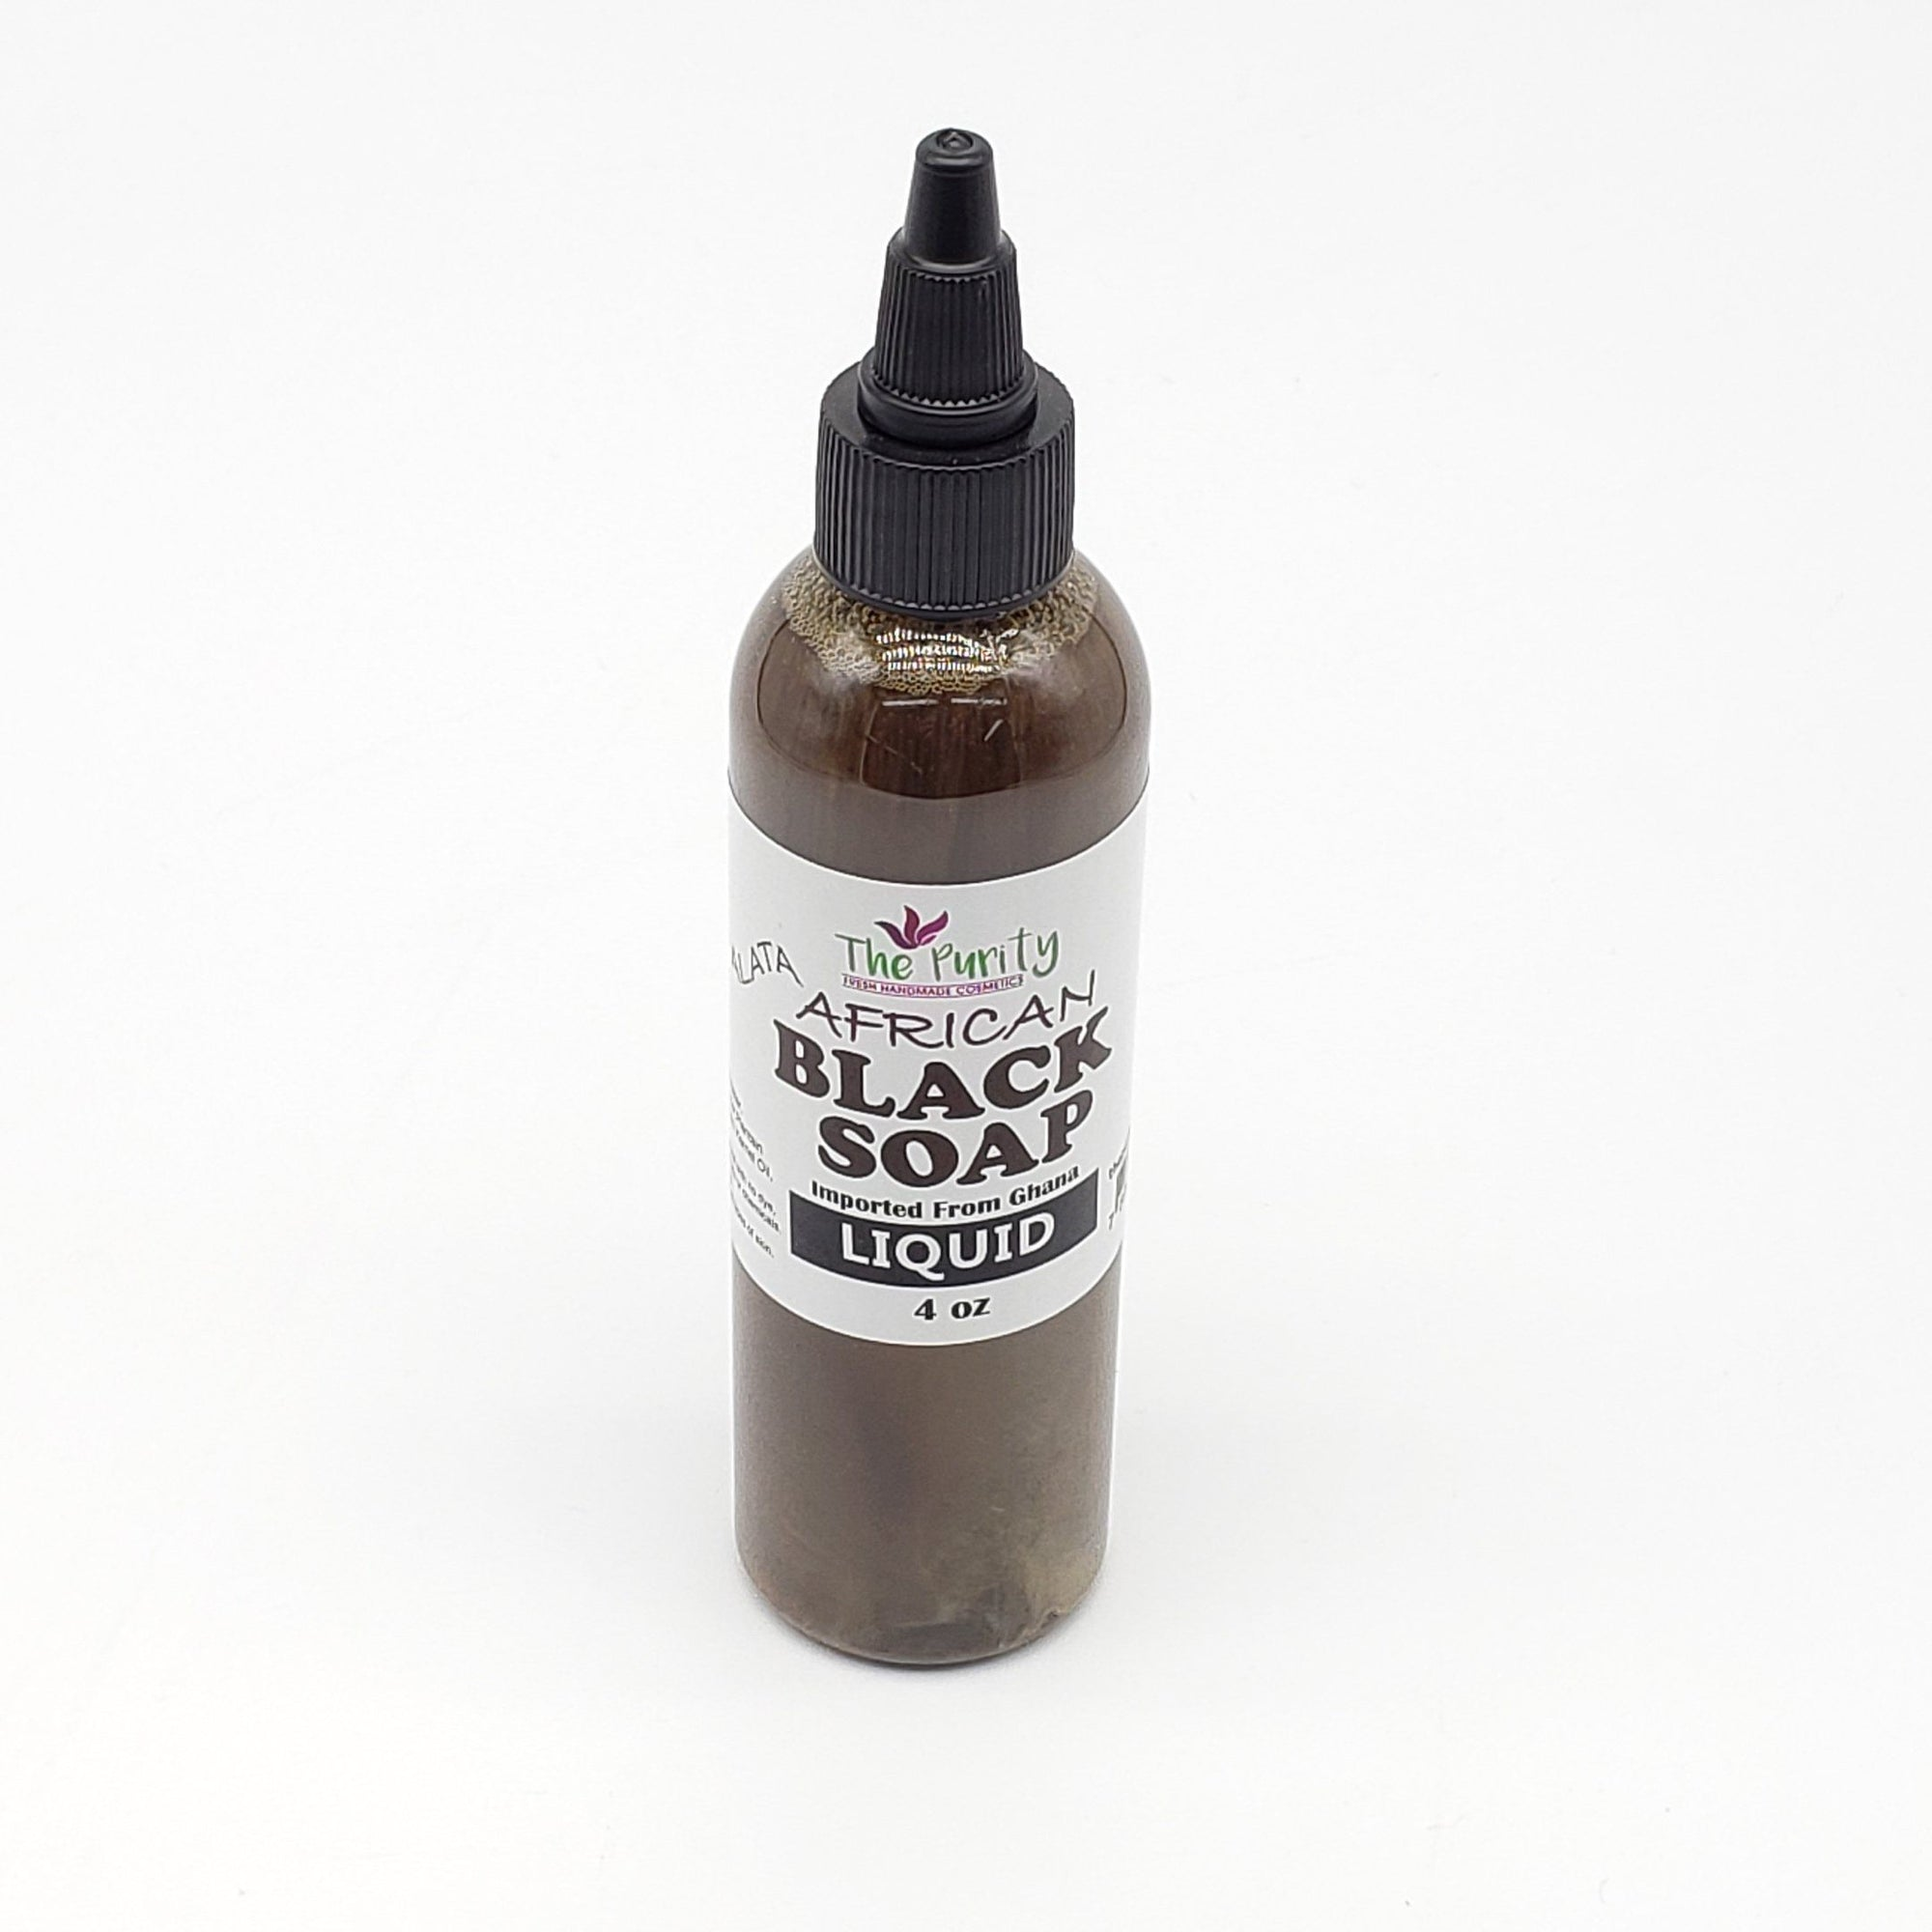 The Purity African Black Soap Liquid